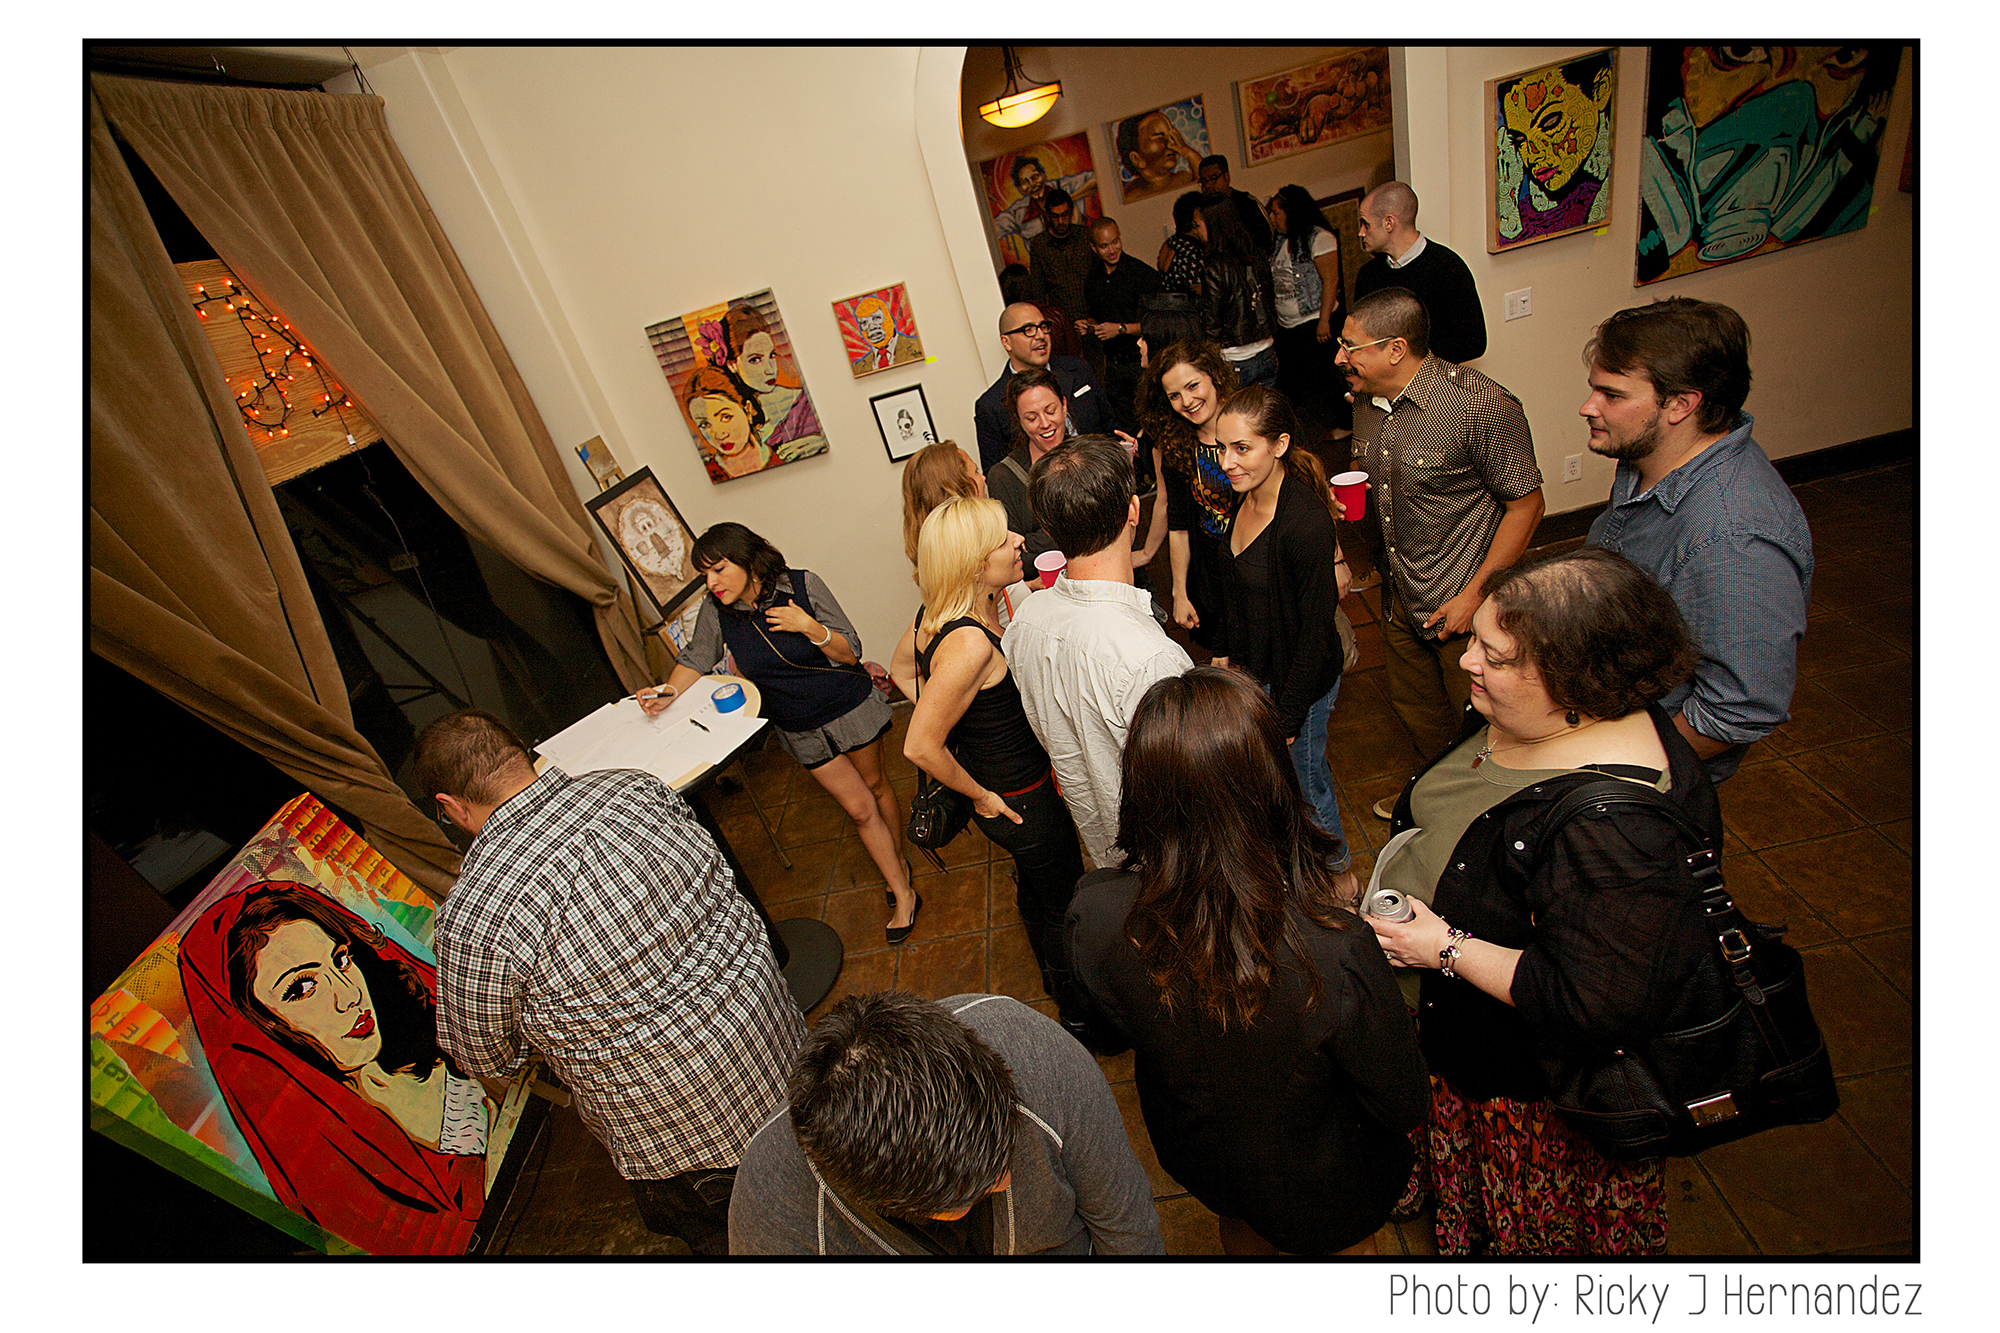 Ricky-J-Hernandez-photography-Oh-poop-I-have-Lupus-art-show-for-Delia-sweet-tooth-in-Privy-studio-Los-Angeles-CA-058